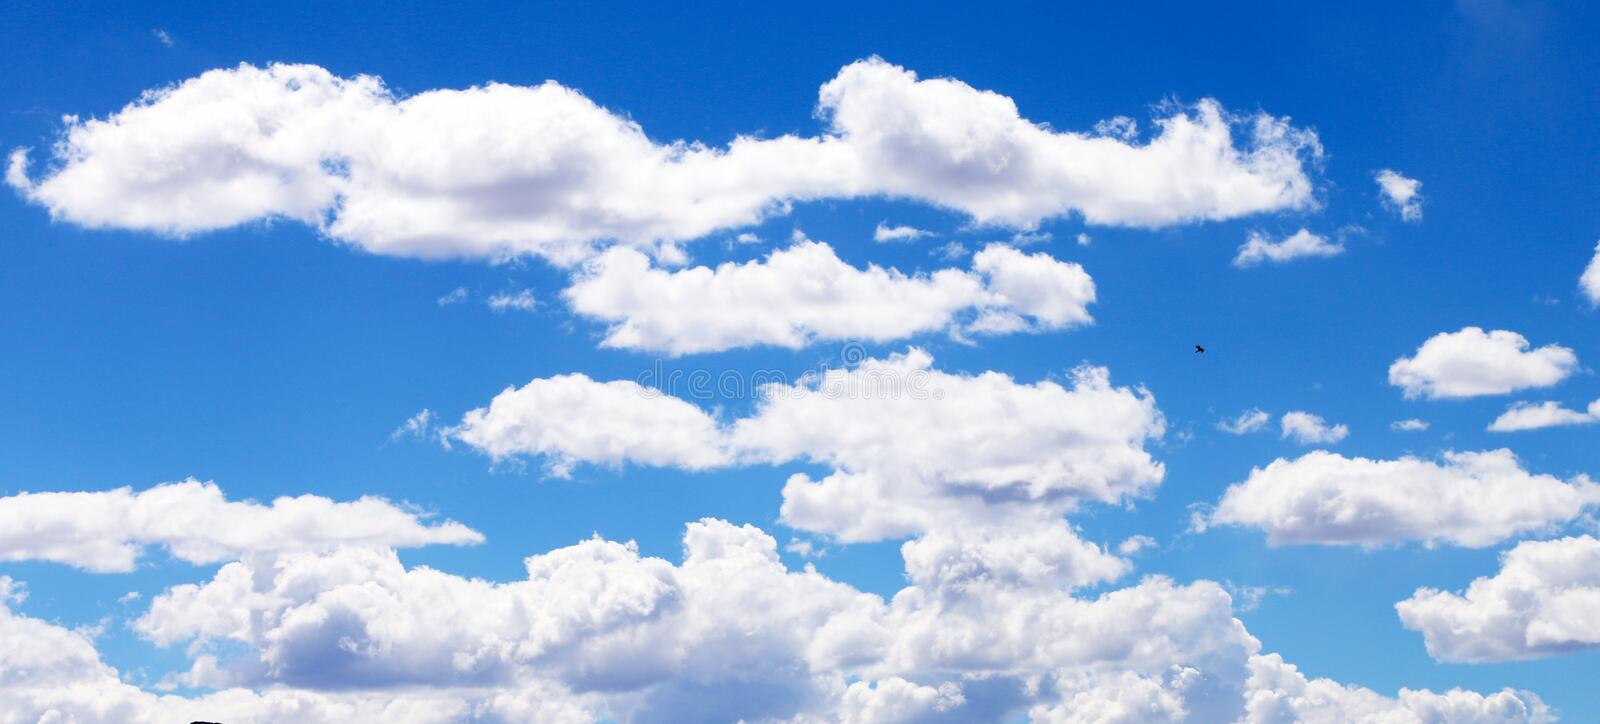 White Clouds and Blue Skies stock images